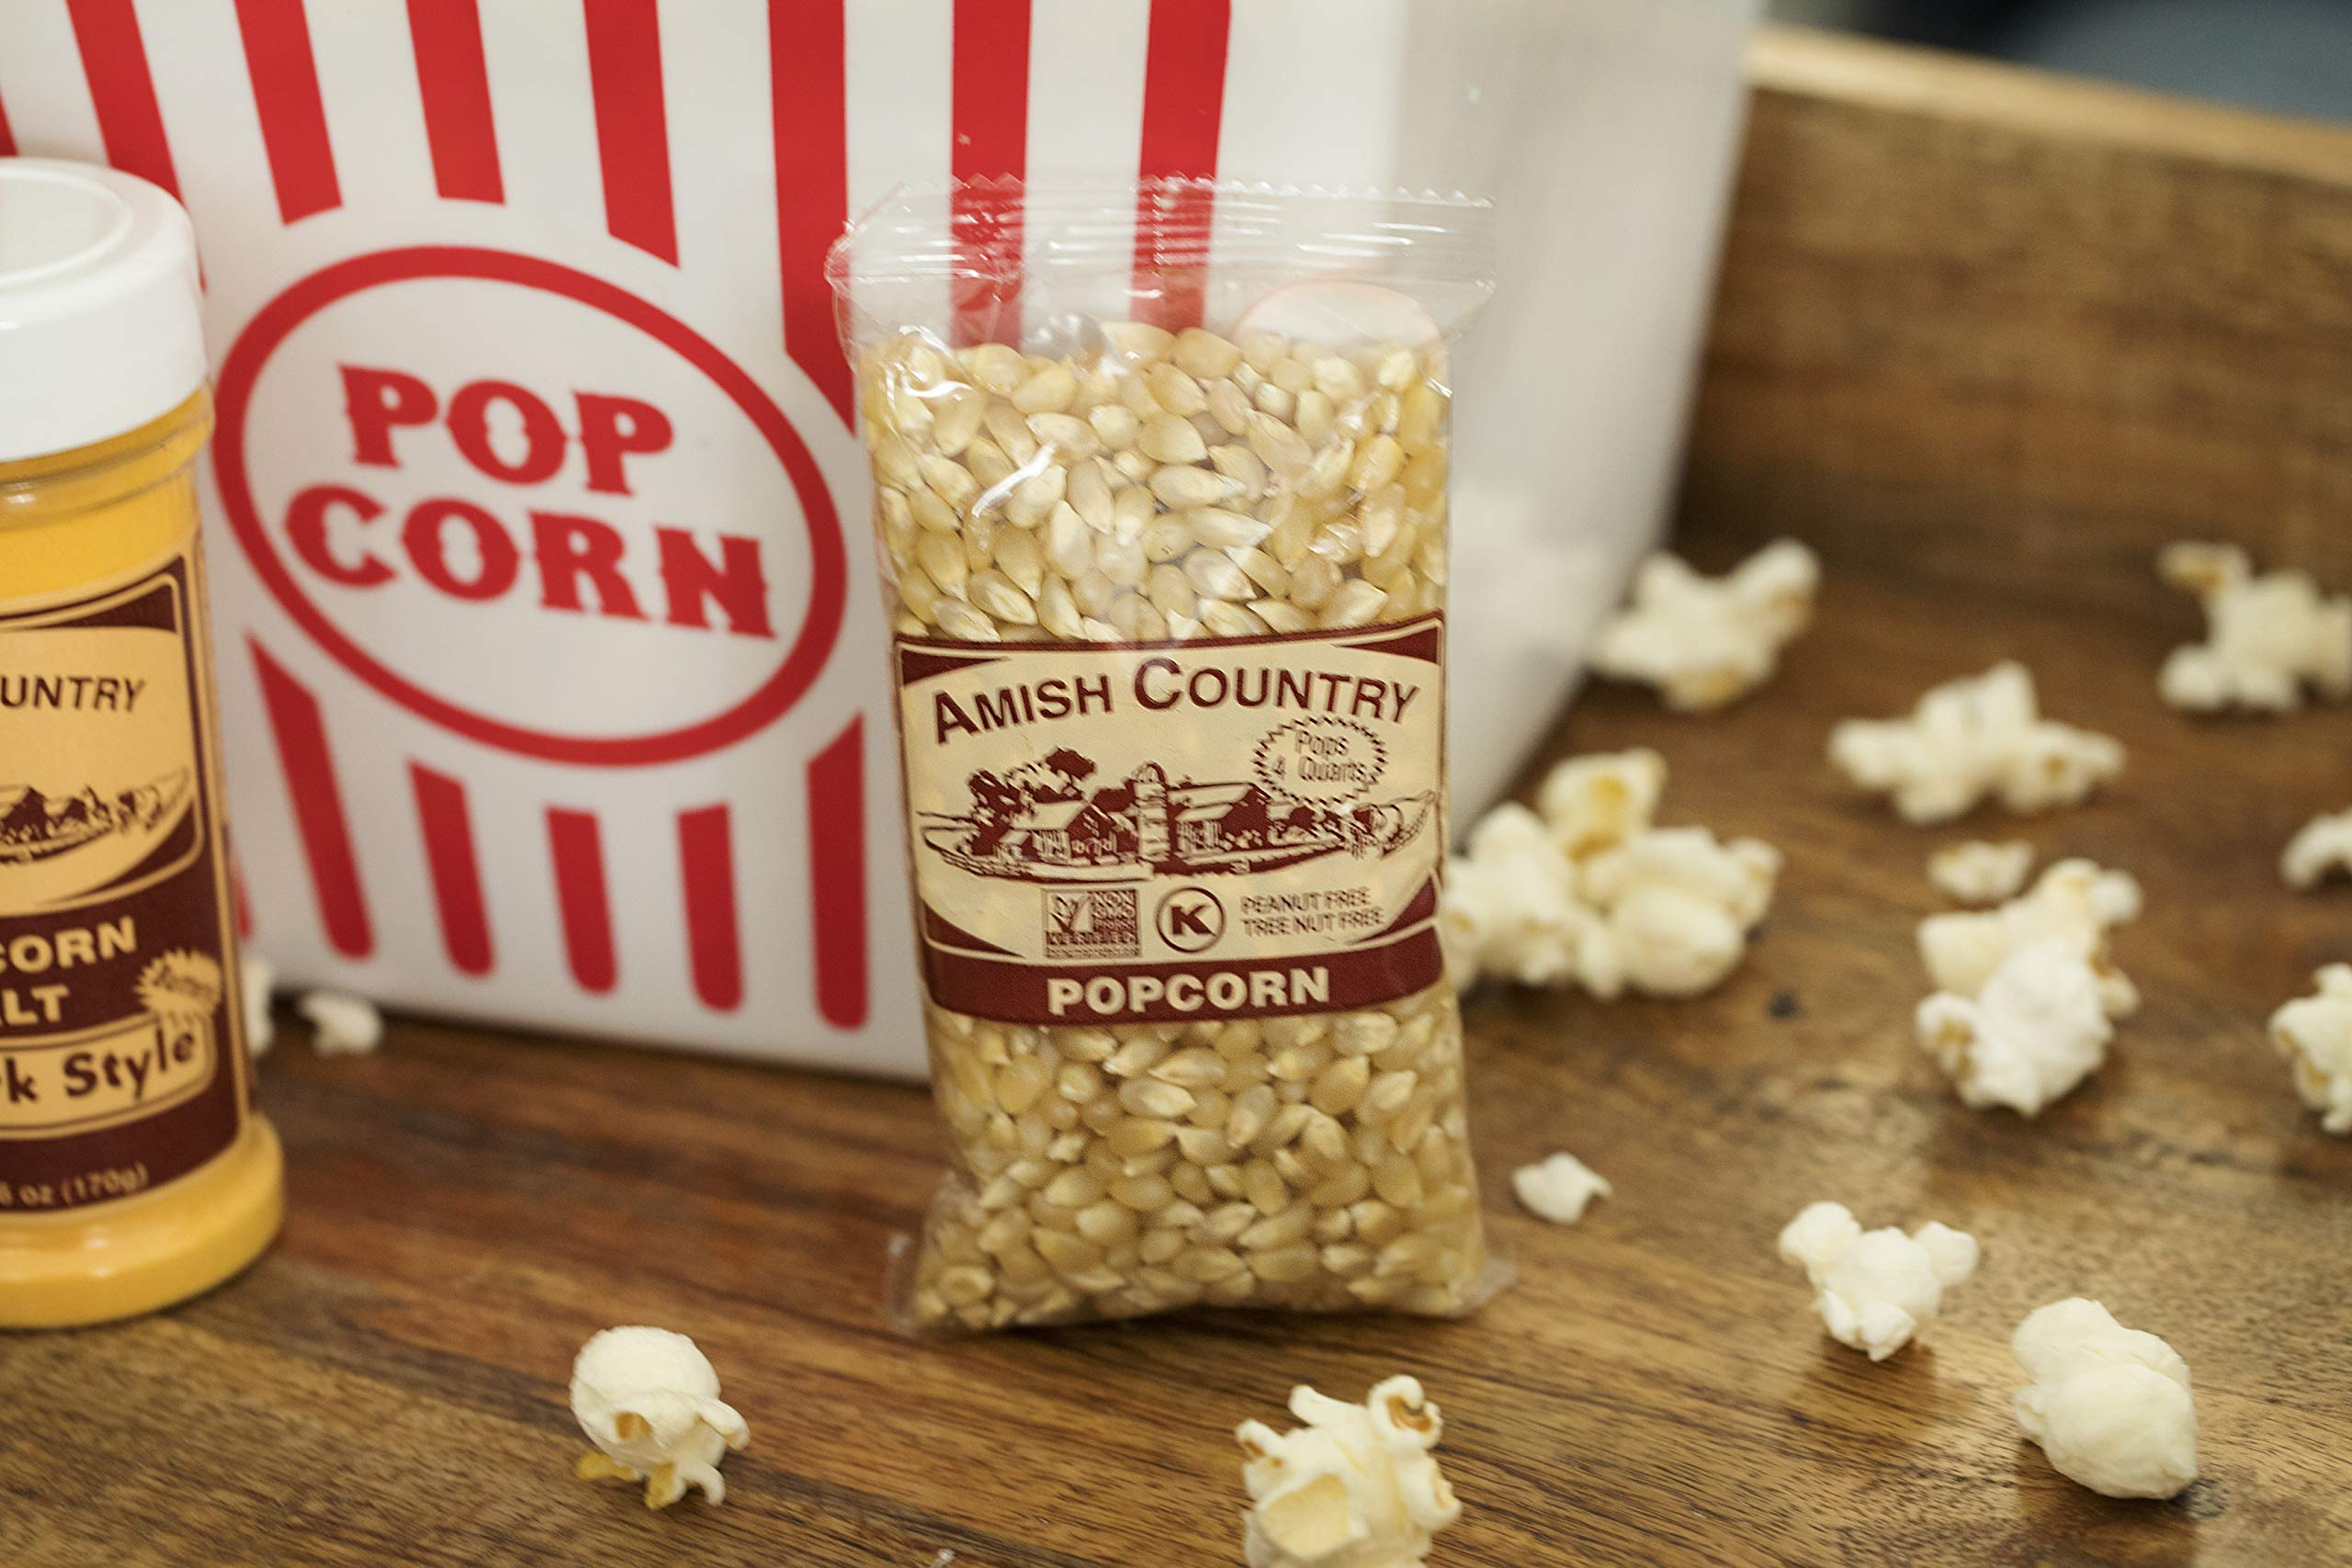 Amish Country Popcorn - Old Fashioned Baby White - (4 Ounce - 24 Bags) - Small & Tender Popcorn - With Recipe Guide by Amish Country Popcorn (Image #4)